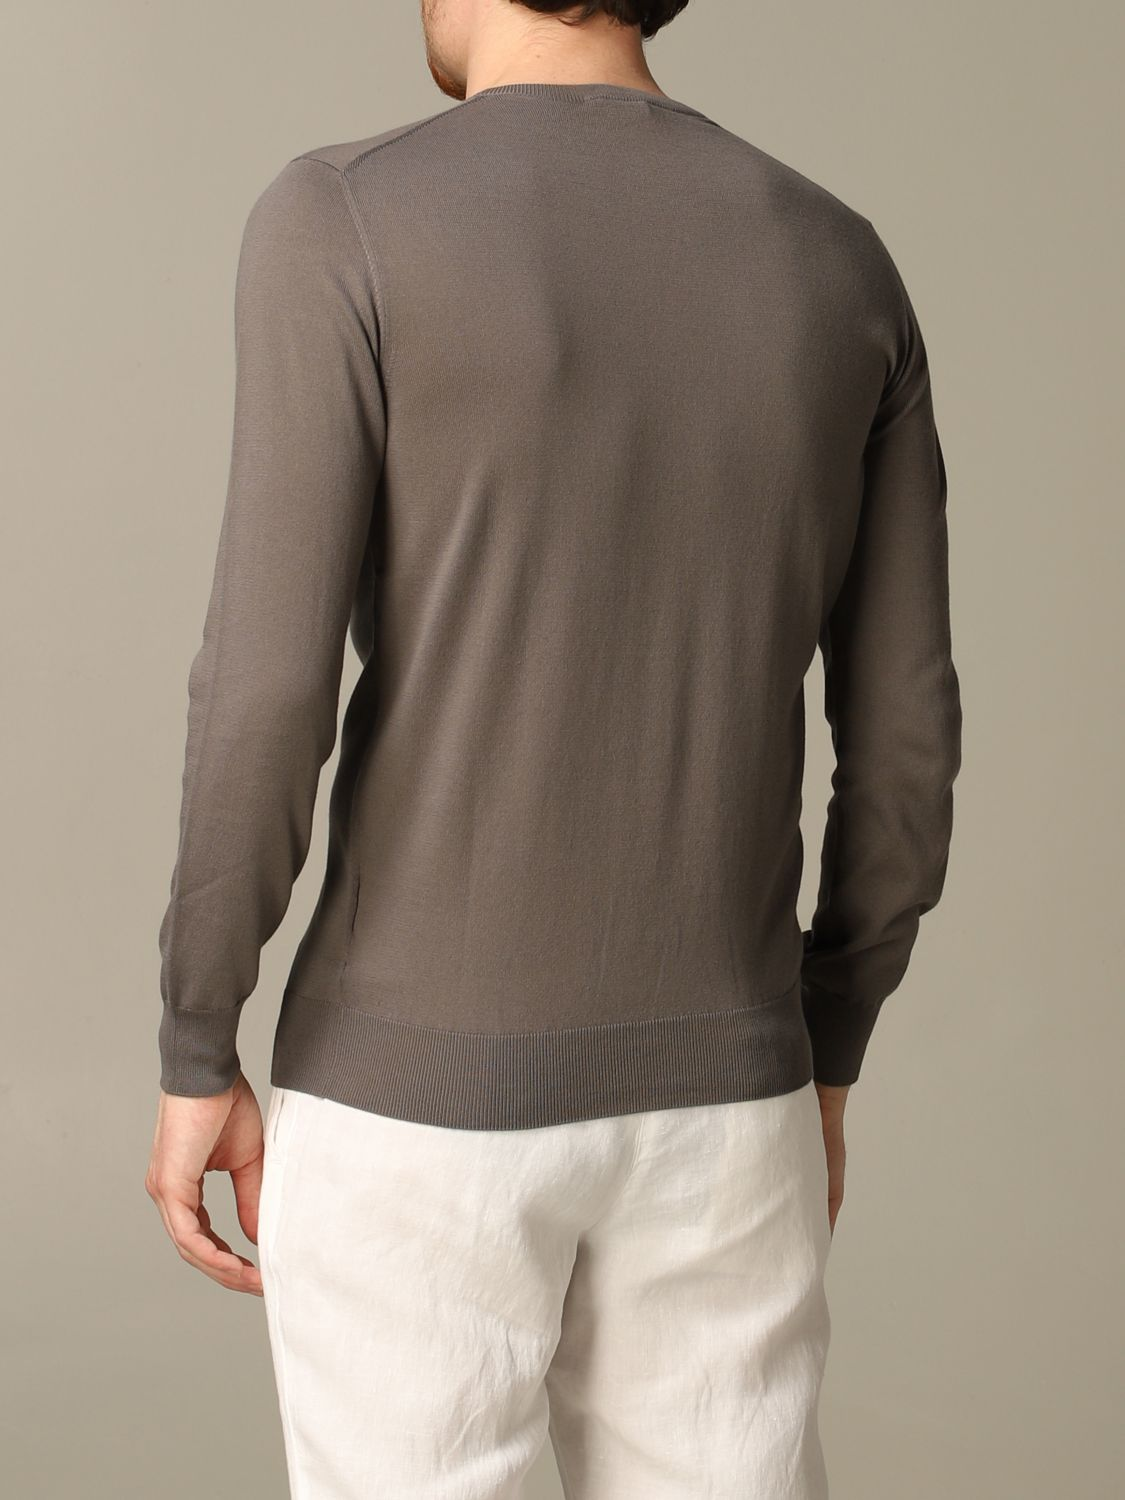 Sweater Cruciani: Sweater men Cruciani dove grey 2